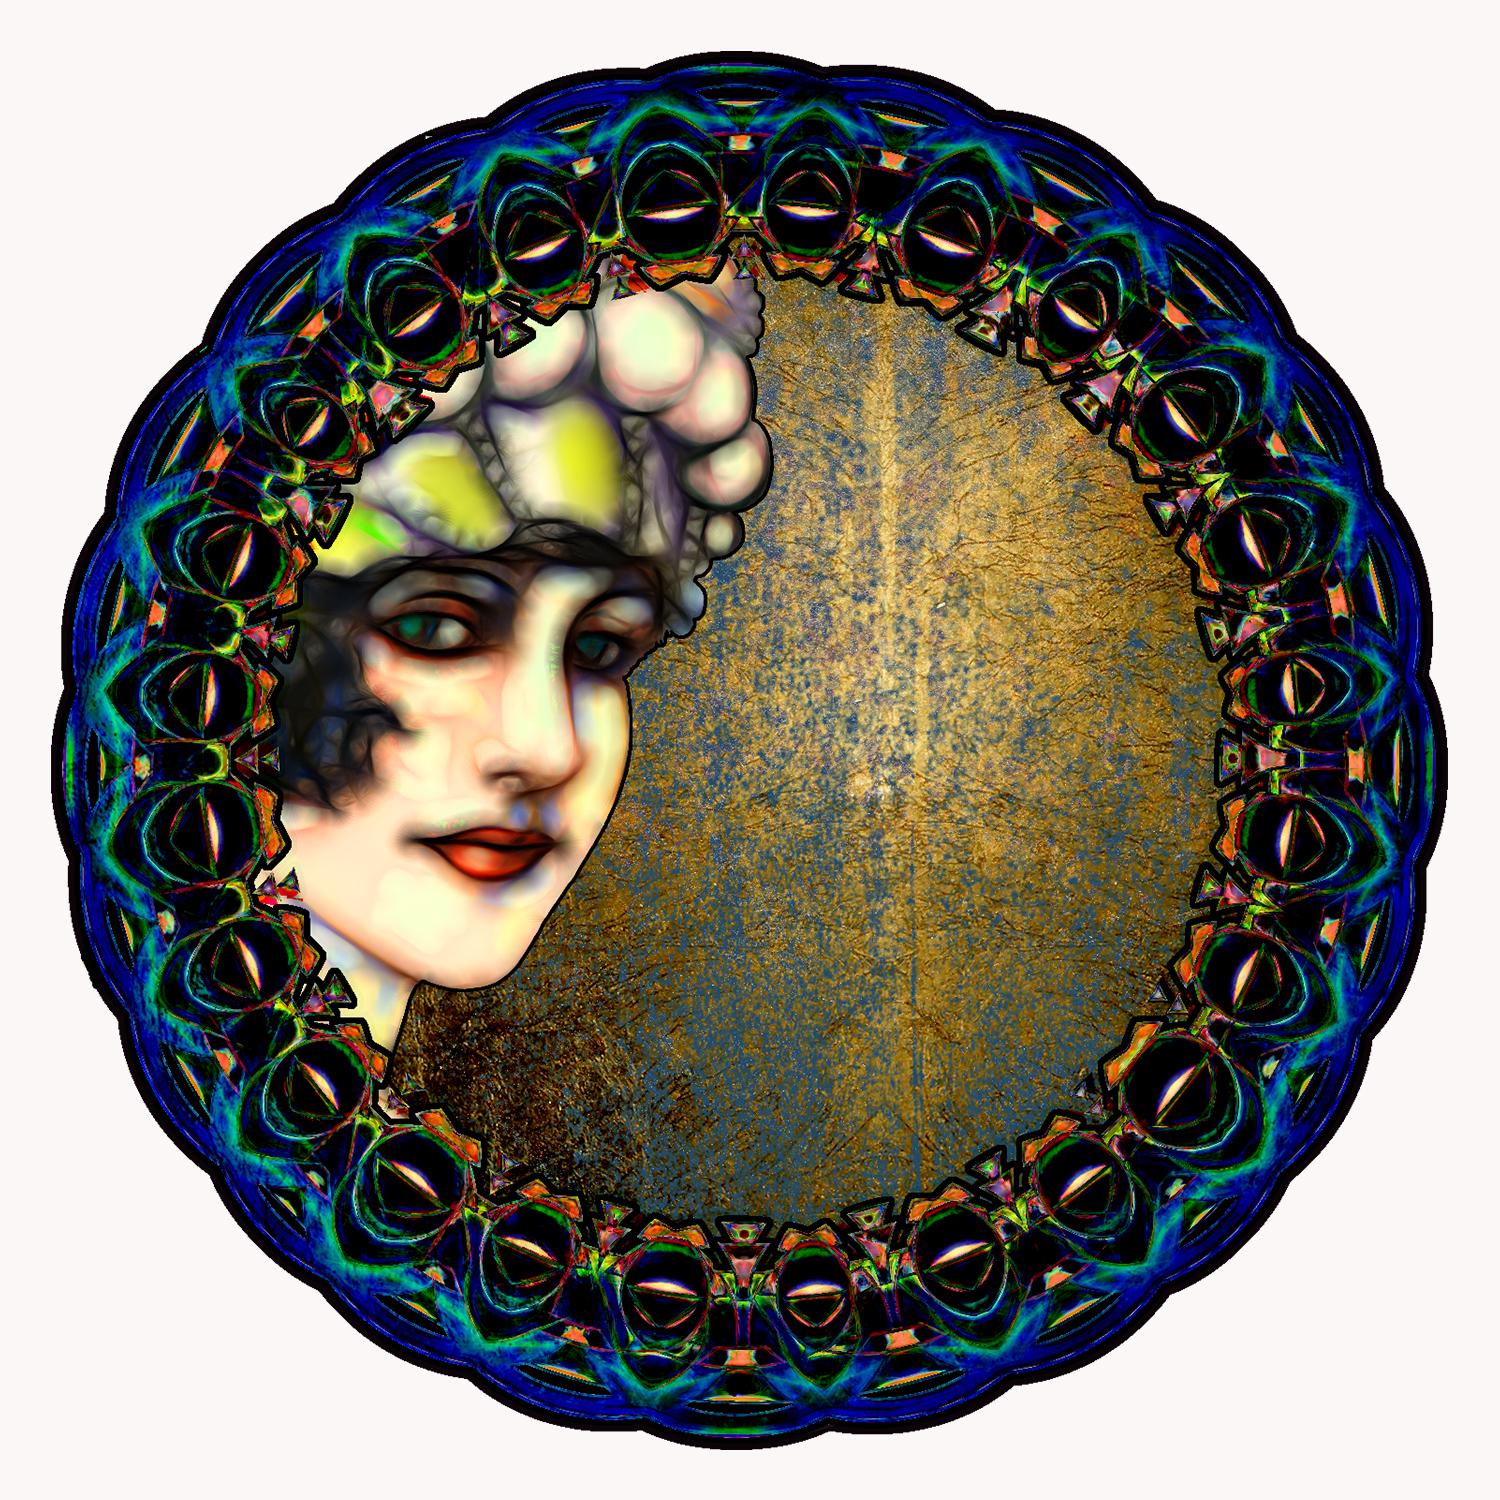 A flapper girl seen in the edge of an ornate circular mirror.